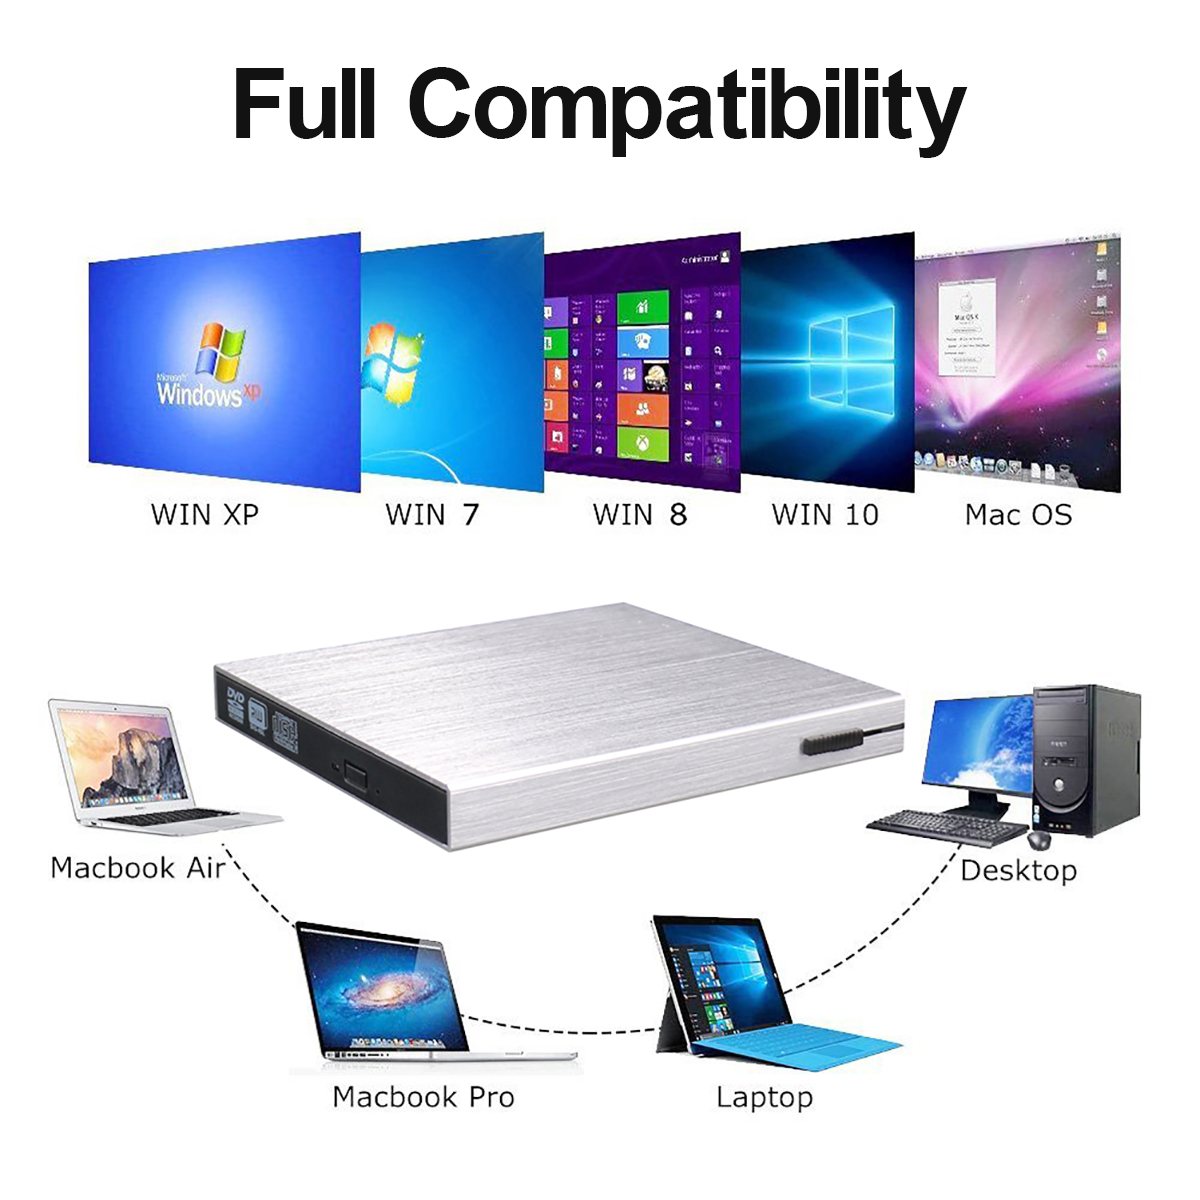 USB 3.0 Aluminum Alloy External Optical Drive Support DVD-RAM DVD-R DVD-RW DVD+R DVD+RW CD-R CD-RW CD-ROM